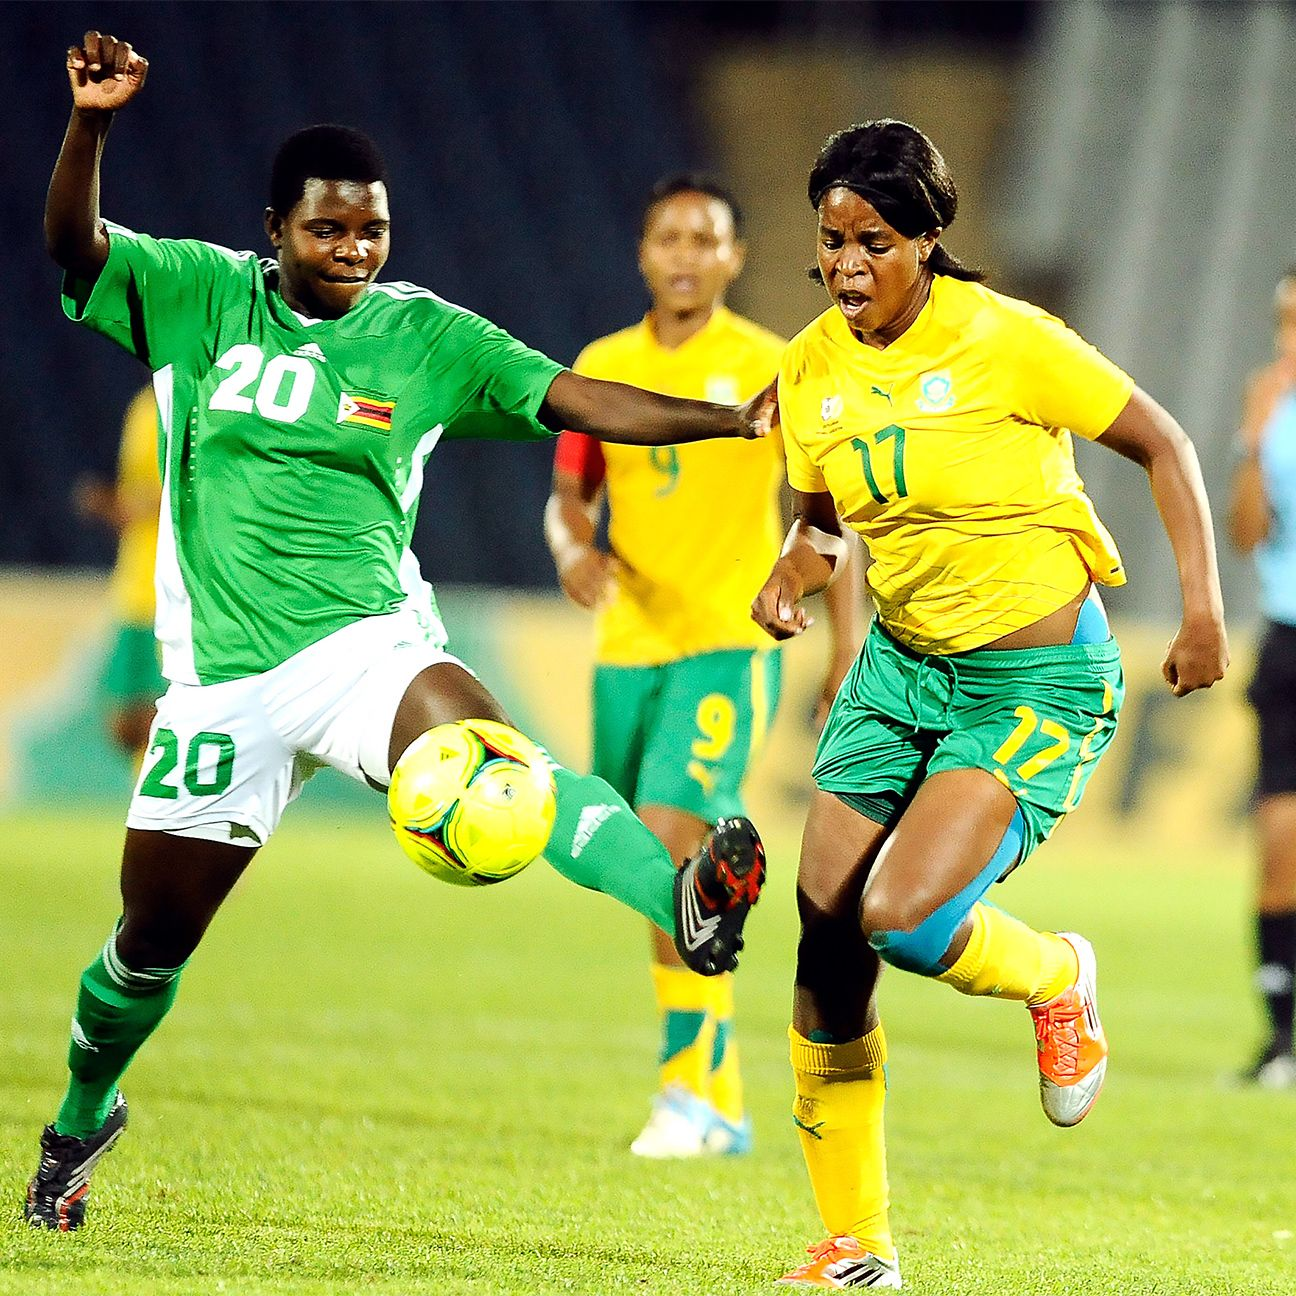 Zimbabwe and South Africa, seen here during a 2012 friendly, will each be representing Africa at next summer's Olympics in Rio.